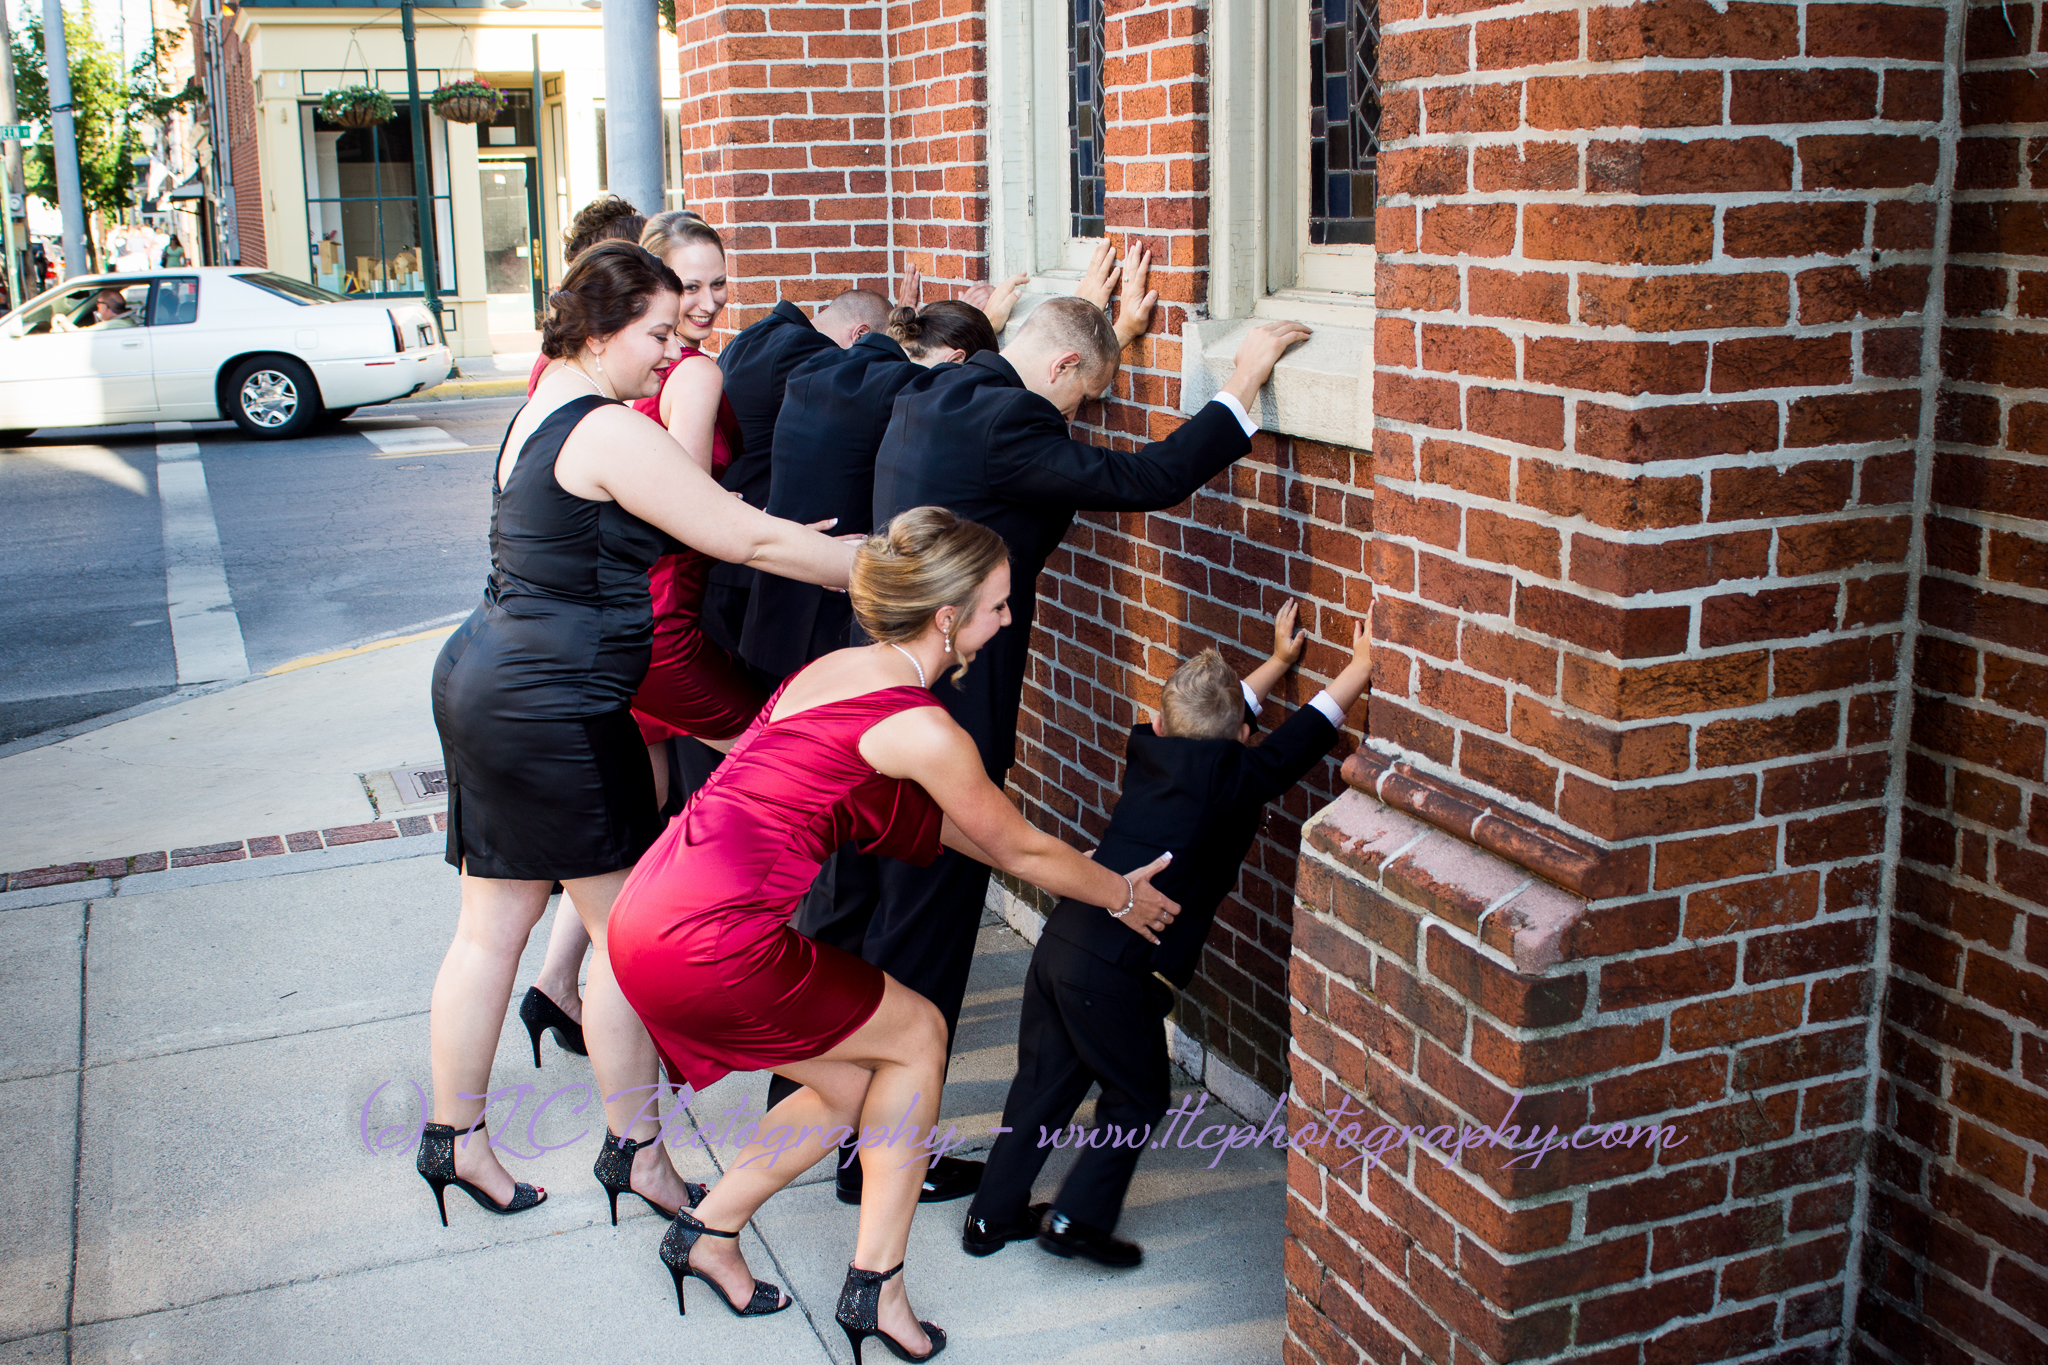 Hijinks on the sidewalk at Kayla and Cody's wedding